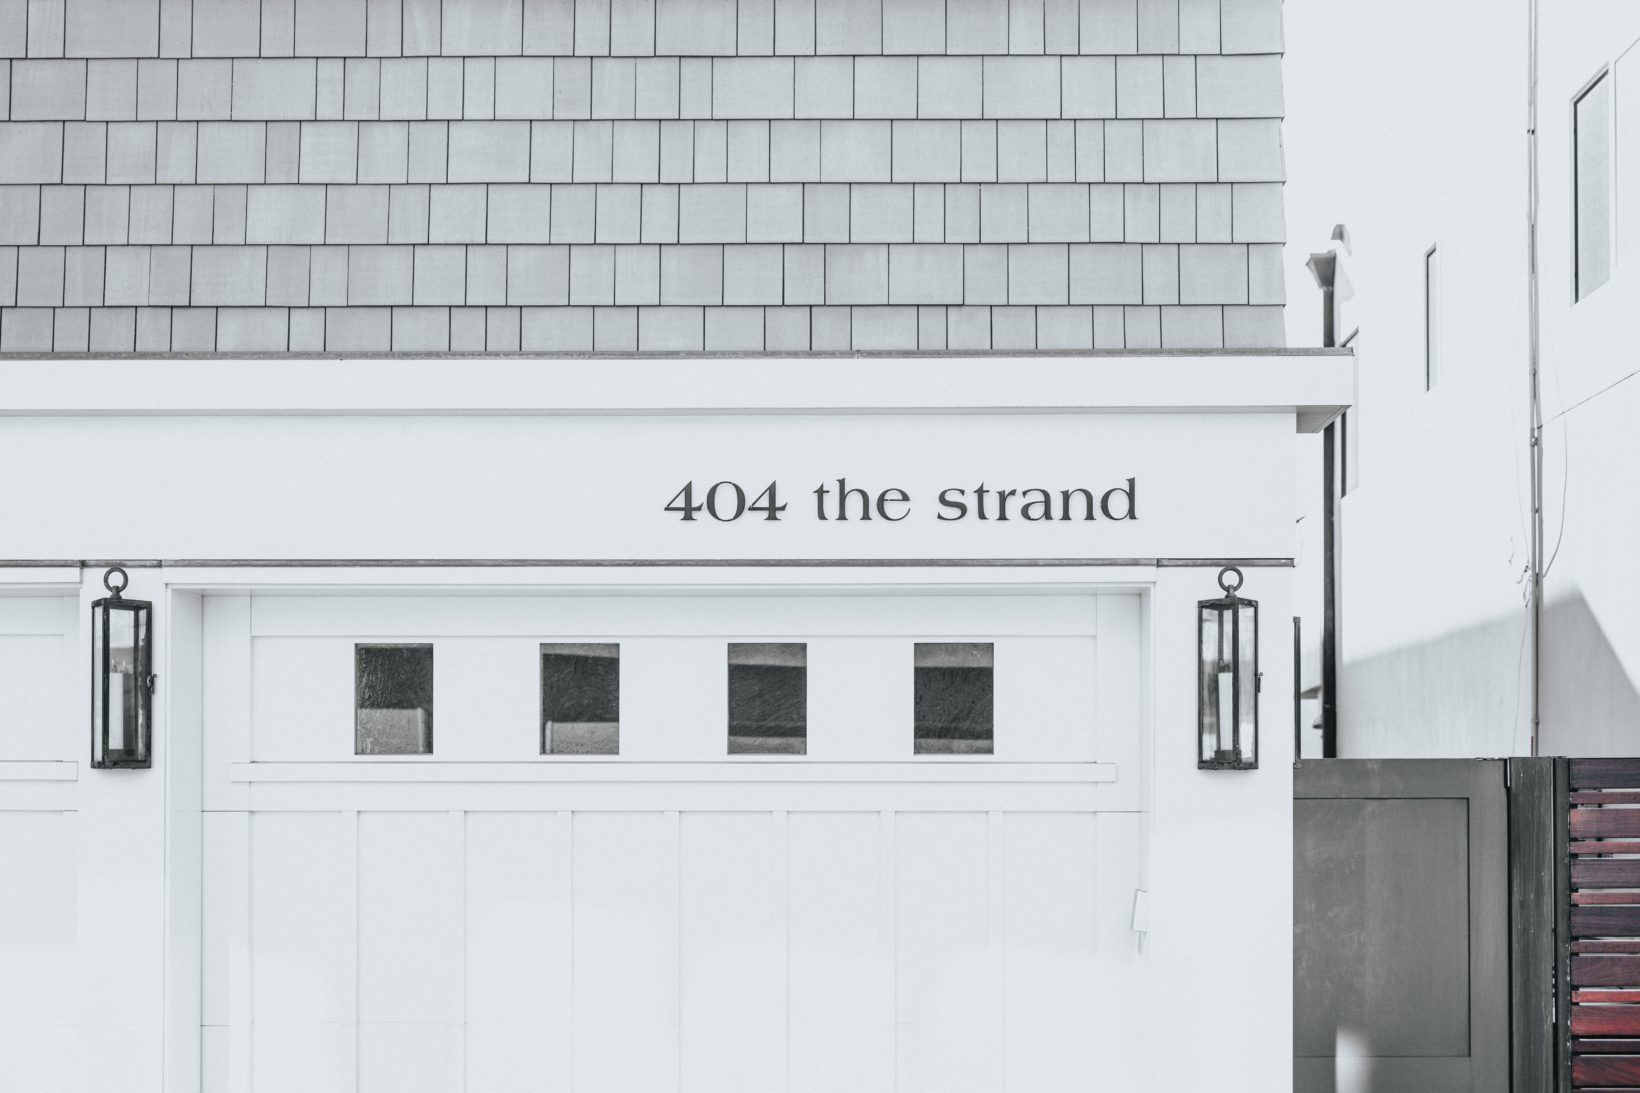 404 the strand - Photo by Nathan Dumlao